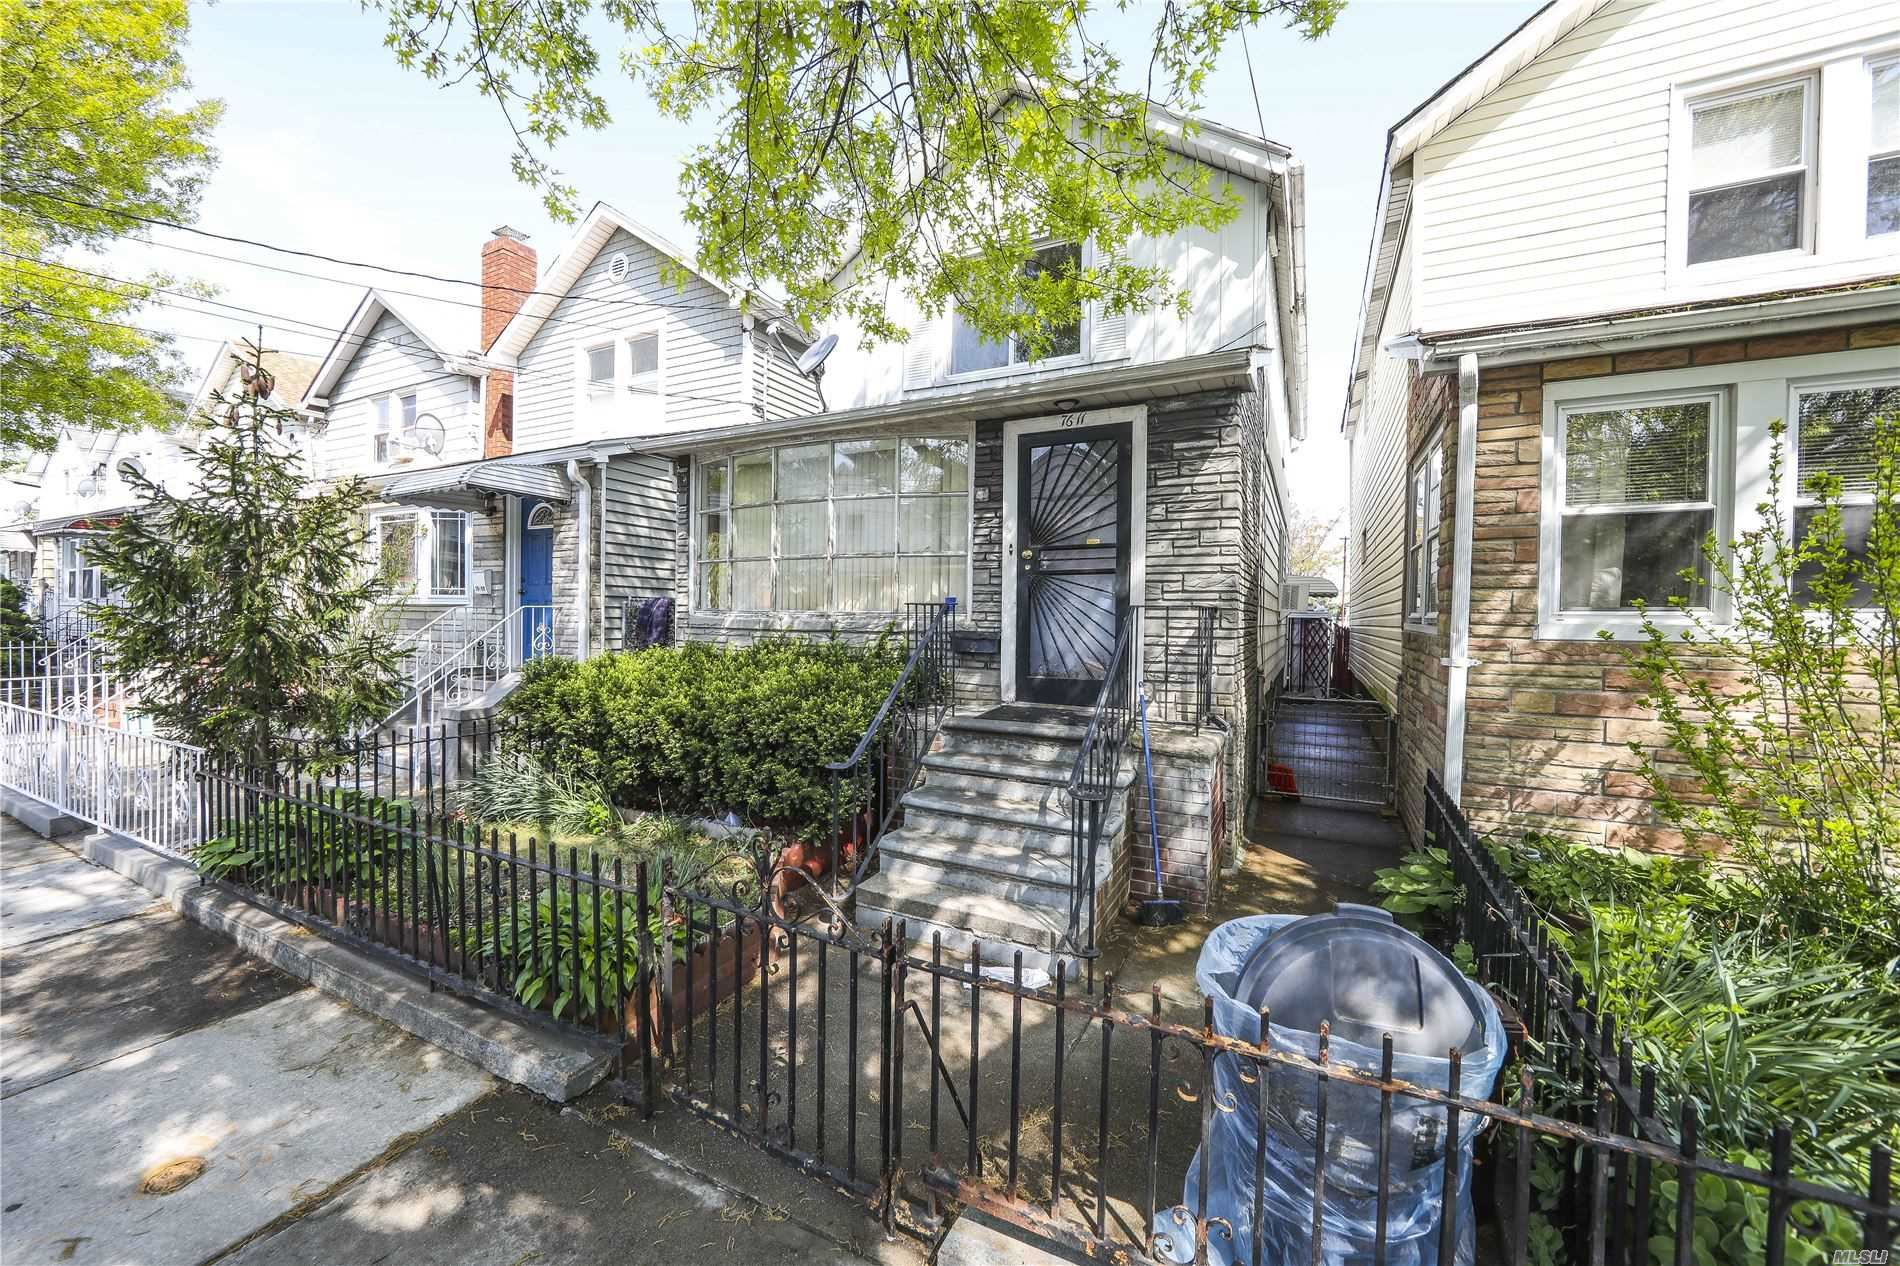 76-11 97th Ave, Ozone Park, NY 11416 - MLS#: 3215824